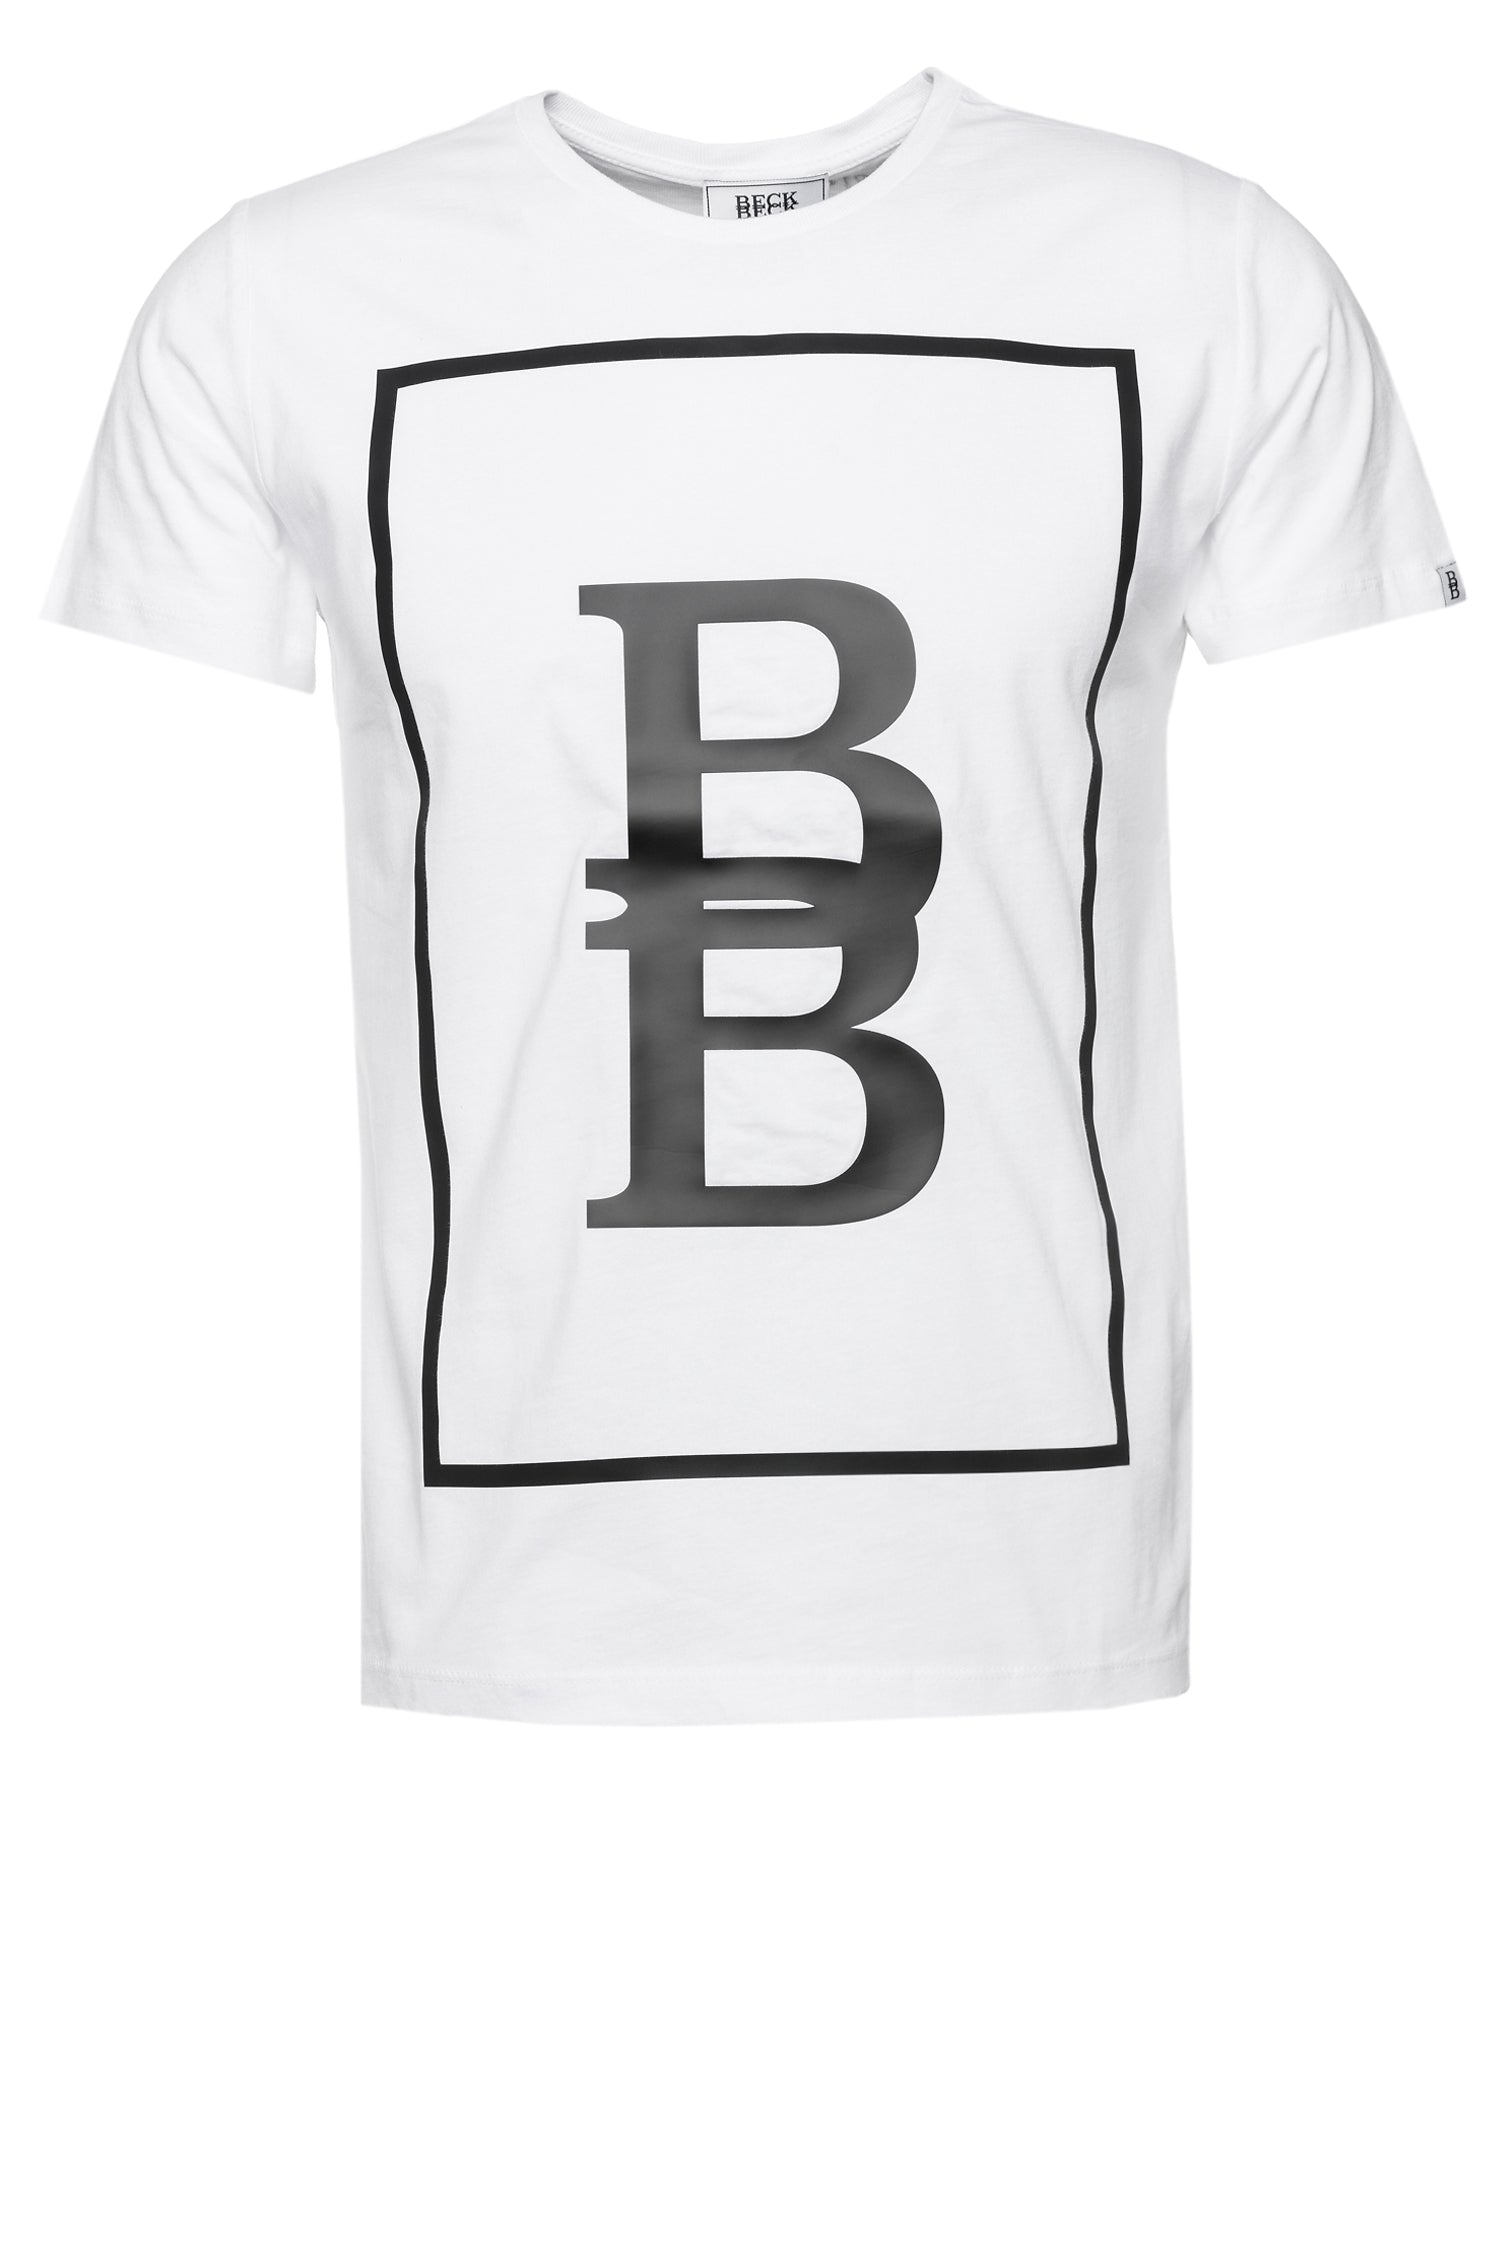 "BECK TO BECK T-Shirt ""BB"" - signed - Limited Edition"